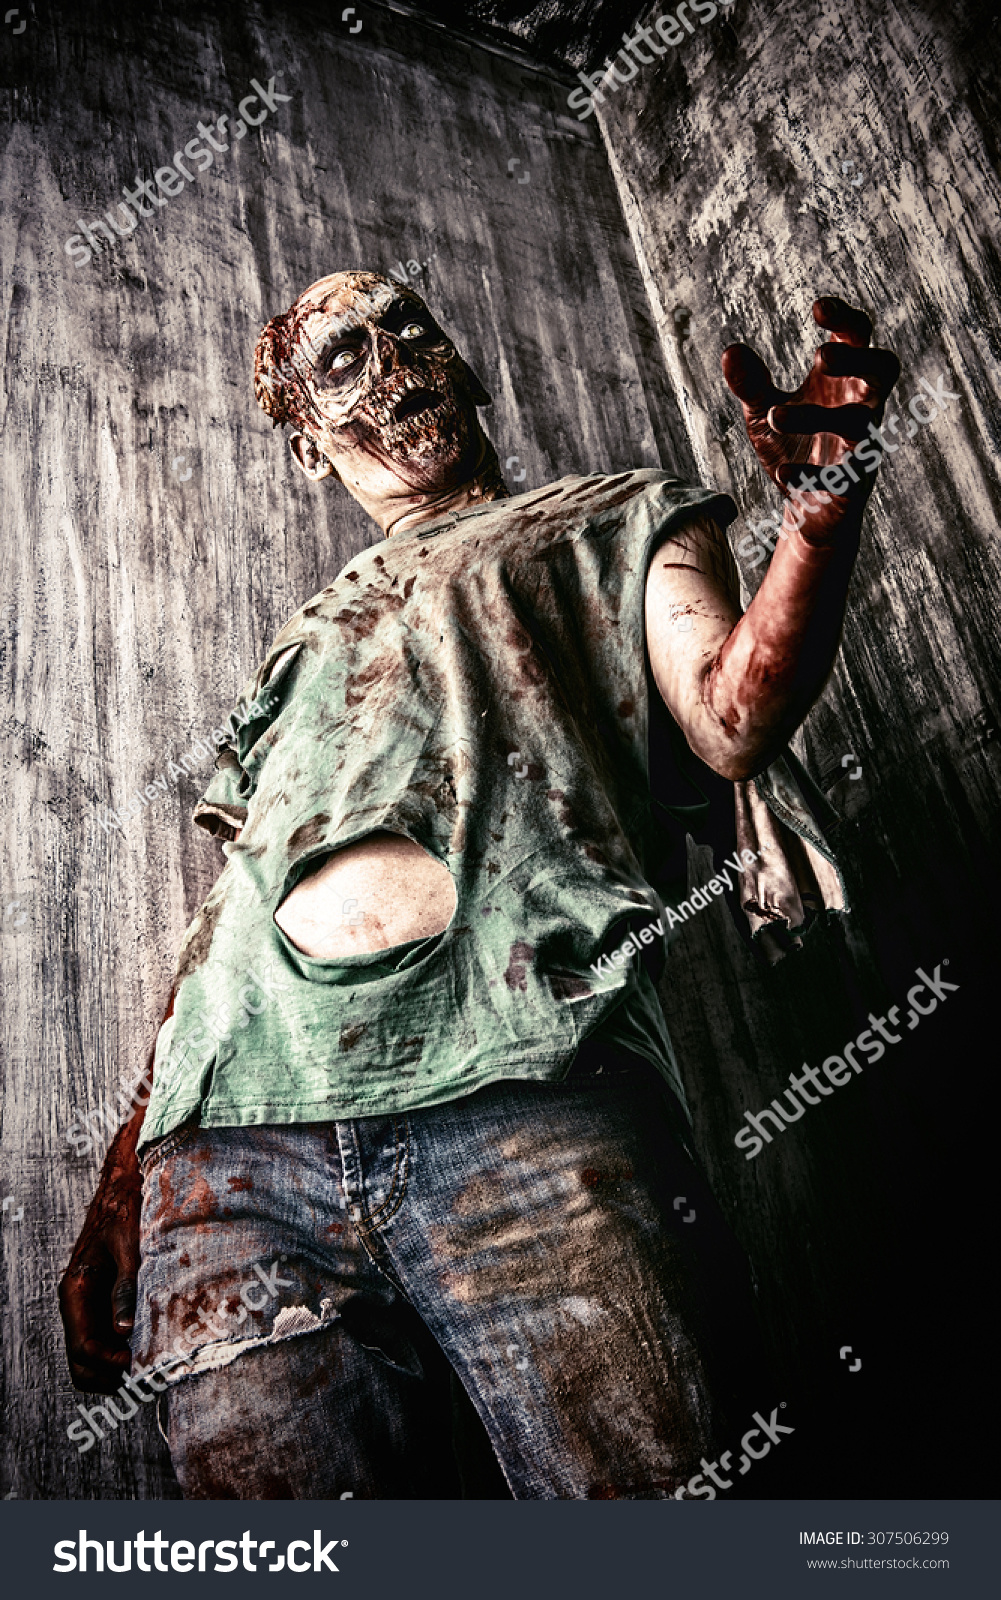 Scary Bloody Zombie Man Old House Stock Photo 307506299 ...